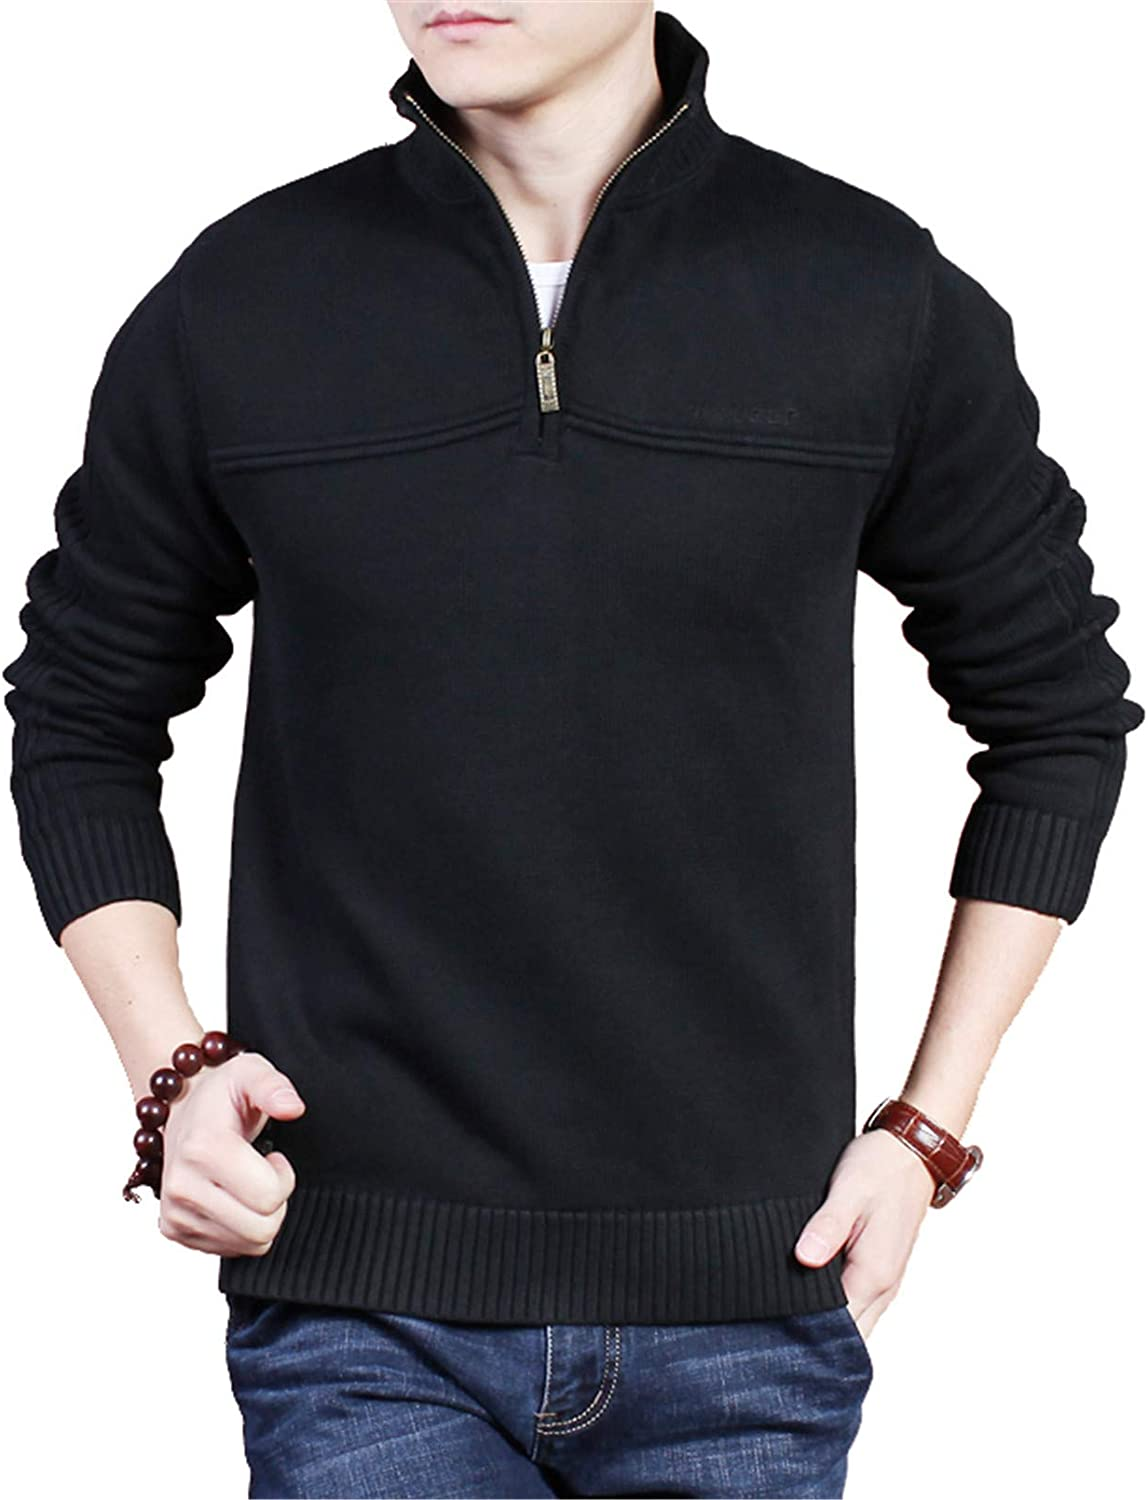 Men's Knitted Pullover Thick Jumpers Sweater Long Sleeve Fall Winter Cotton Warm Cardigans Knitwear Plus Cashmere Outwear,Black,XXXL